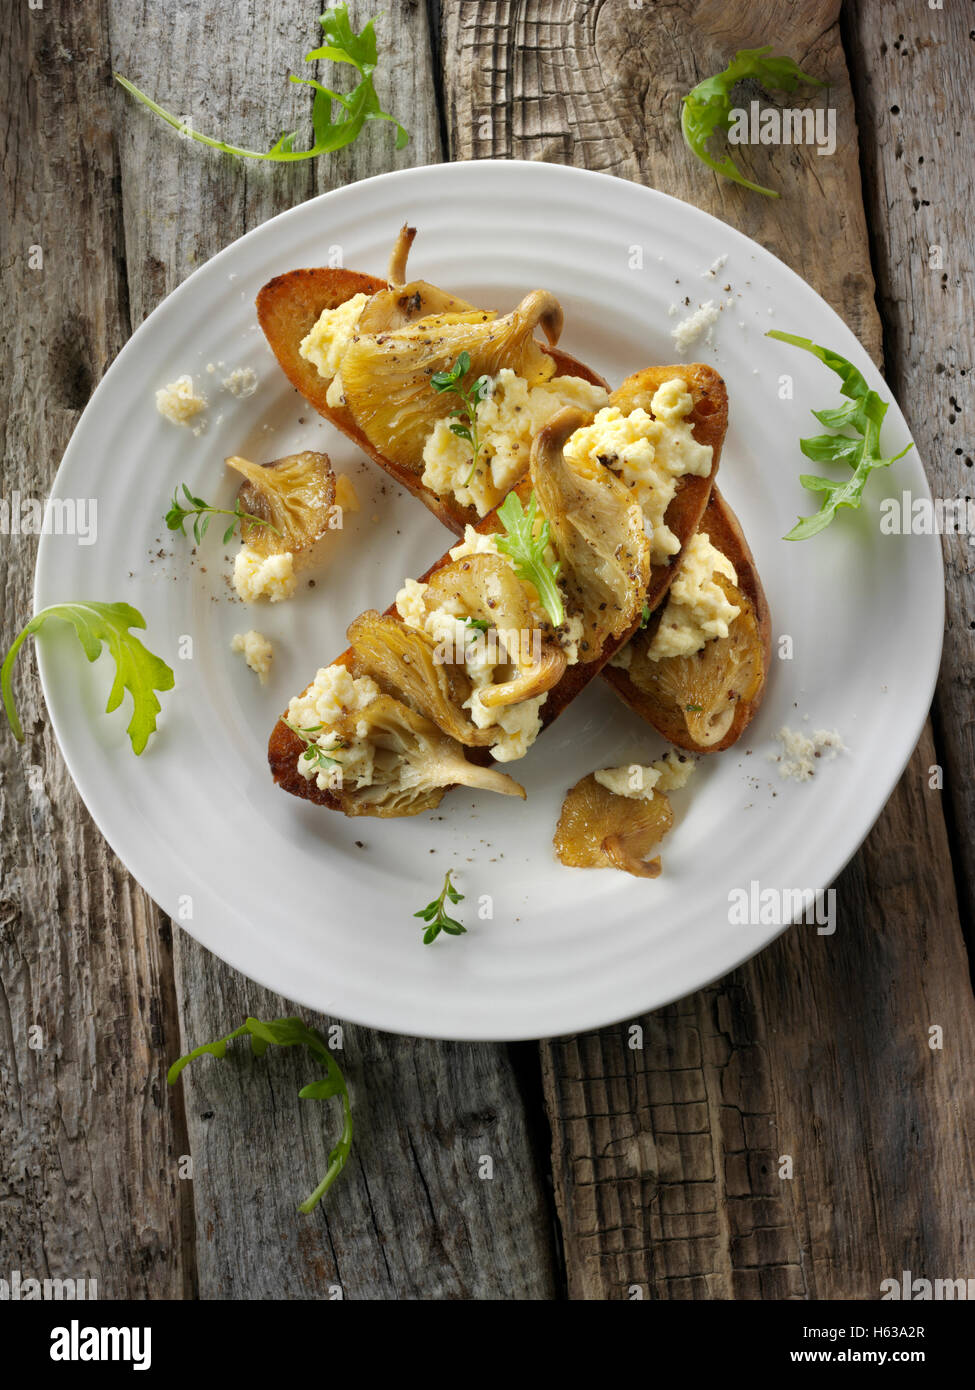 Yellow Oyster mushrooms sauteed in butter and served with scambled egg on sour dough toast with wild rocket - Stock Image